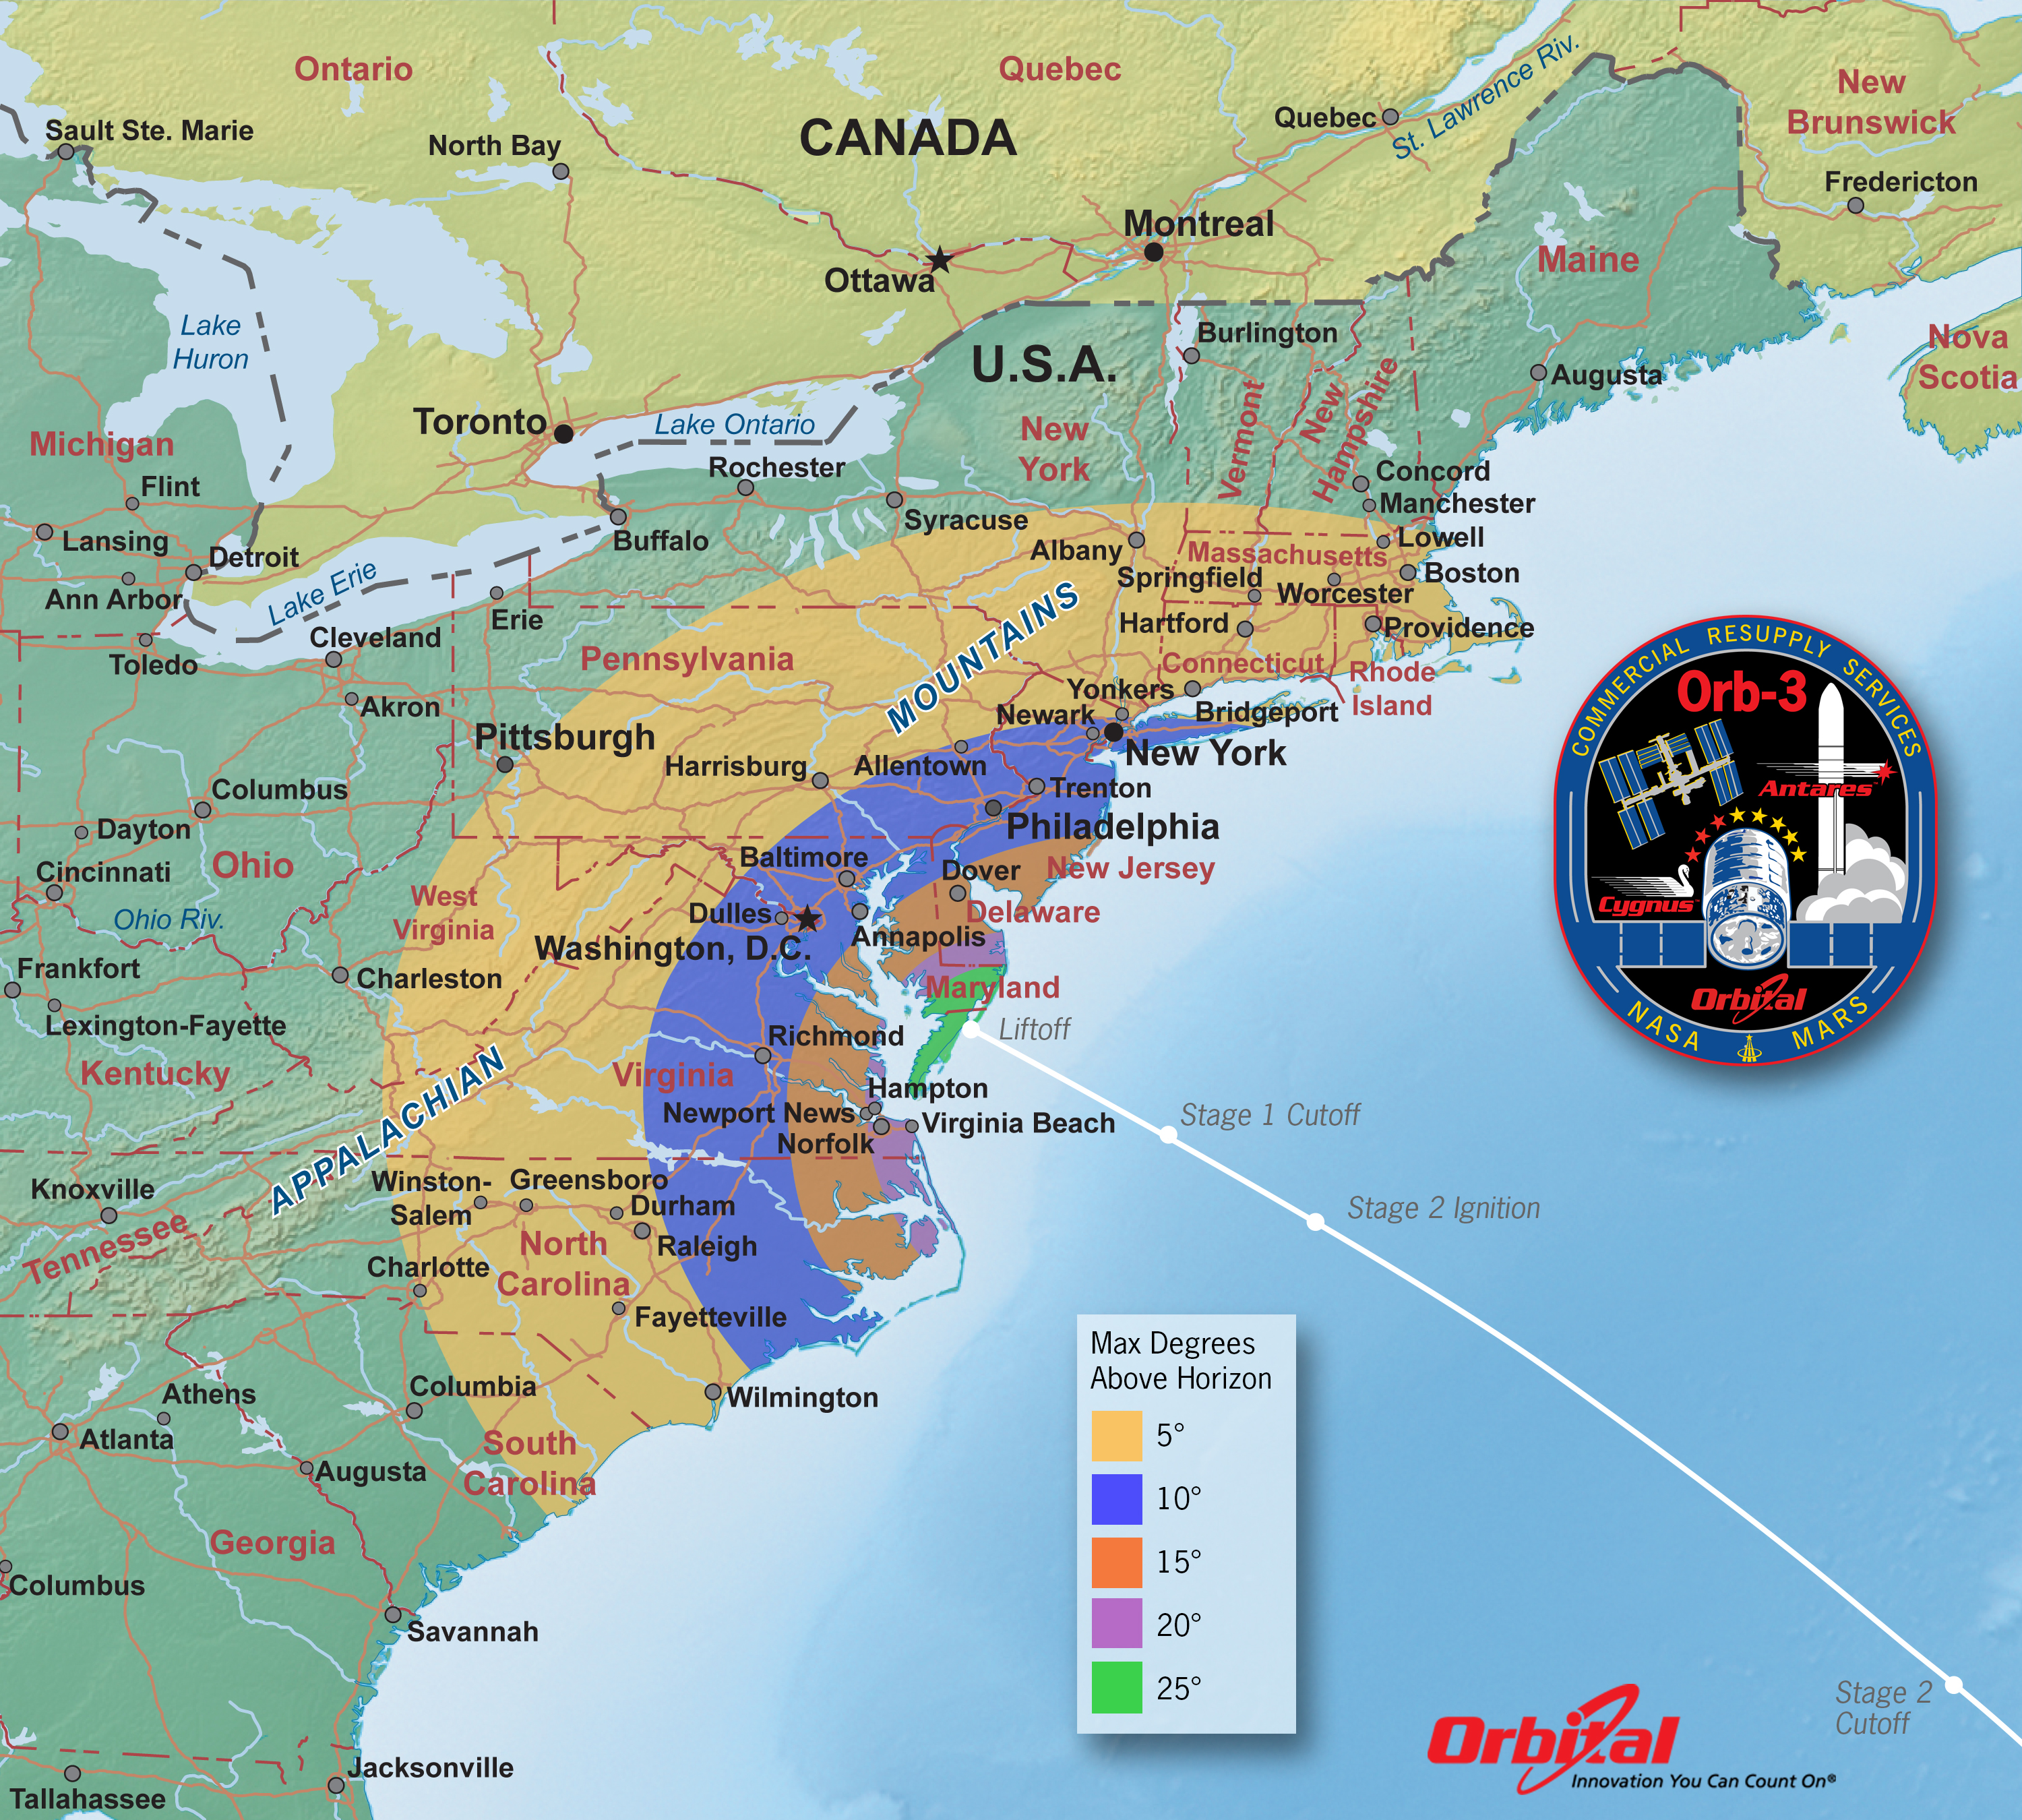 Orbital Launch Viewing Map Elevation NASA - Elevation map of us